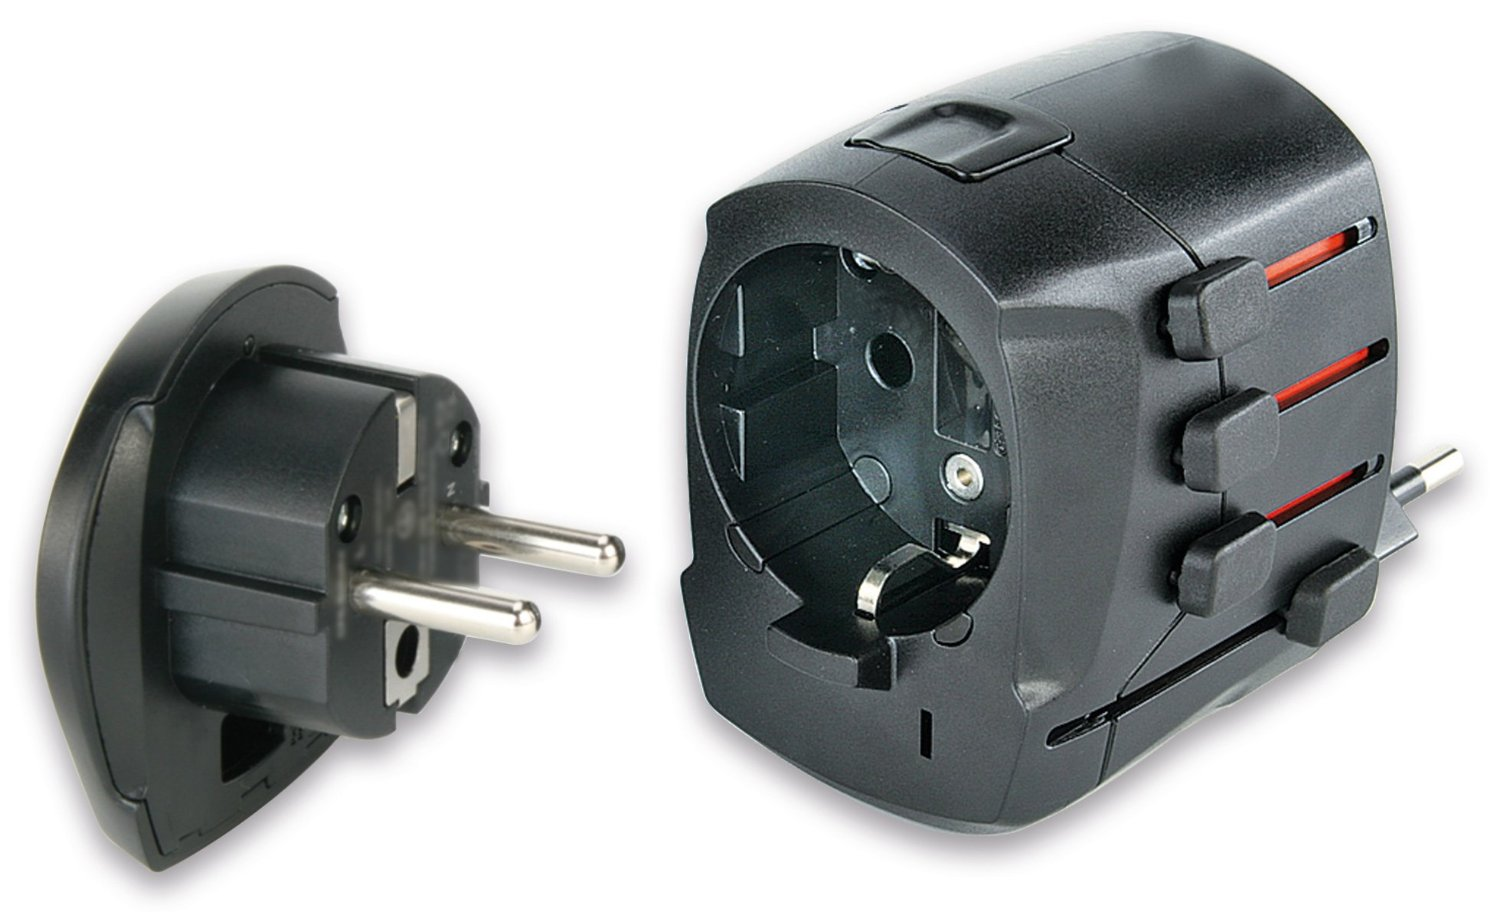 Ansmann All in One 3 - Adapter Gniazda zasilajacego